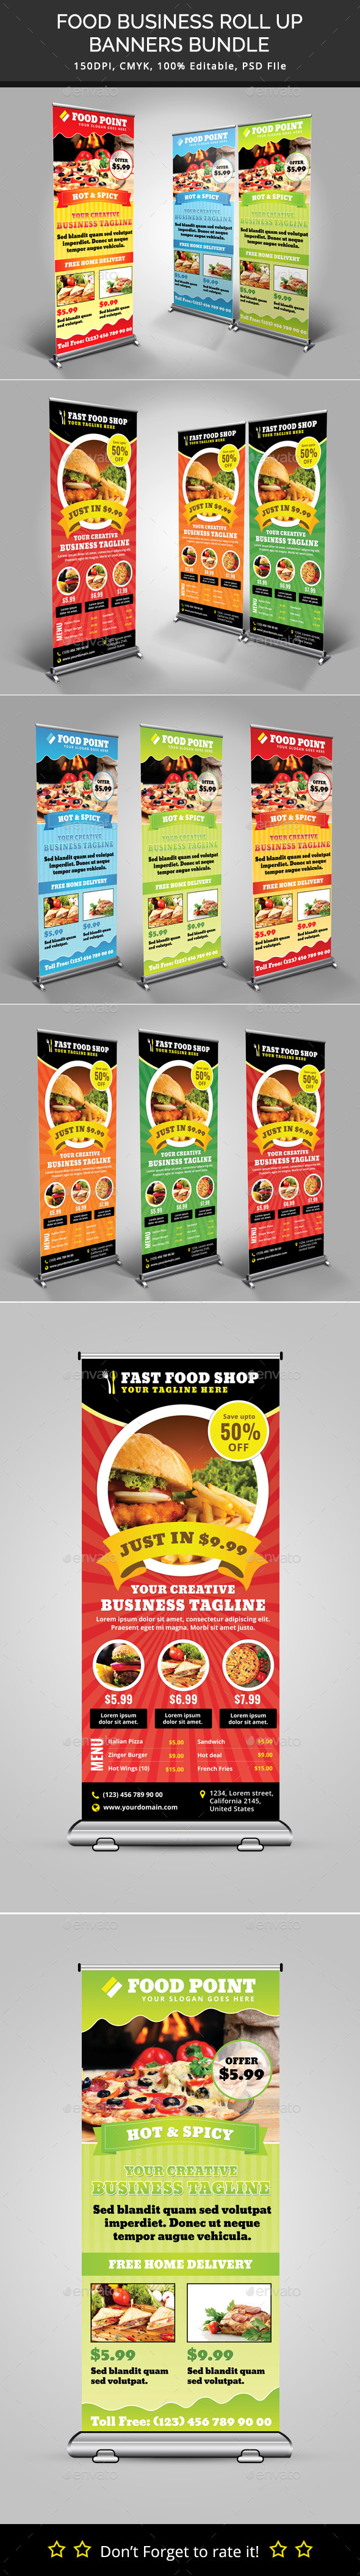 Bundle of 2 Food Business Rollup Banners - Signage Print Templates